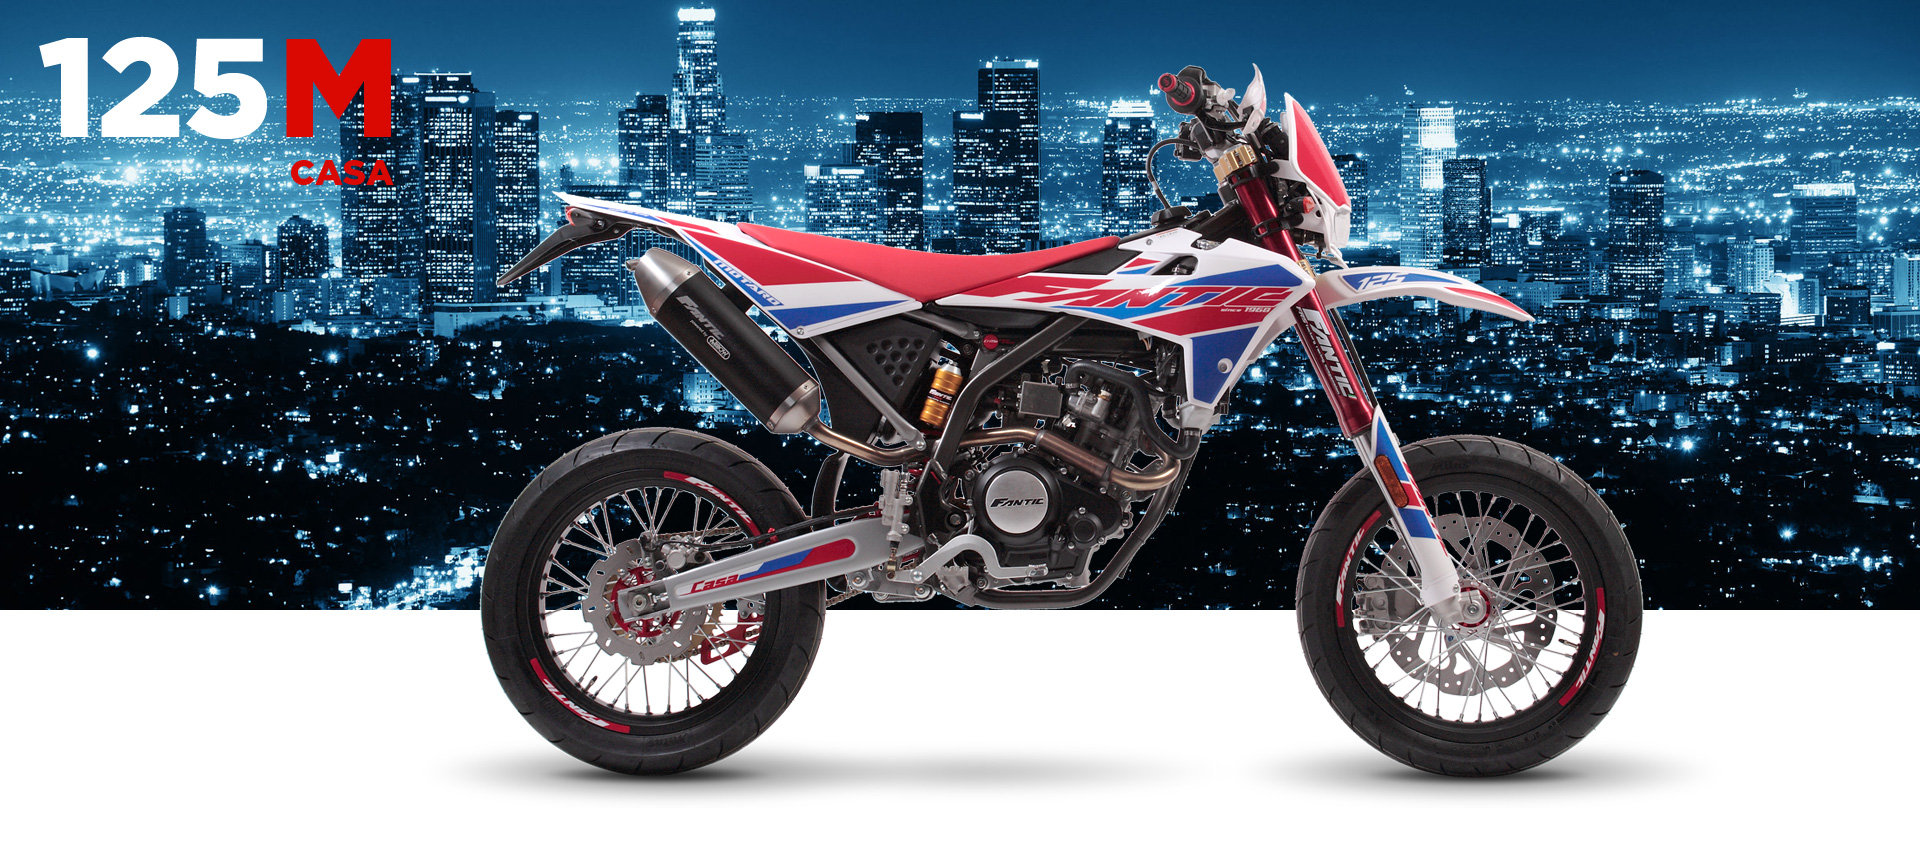 2020 Fantic Casa 125M Super Motard Brand New 0% Finance For Sale (picture 3 of 3)